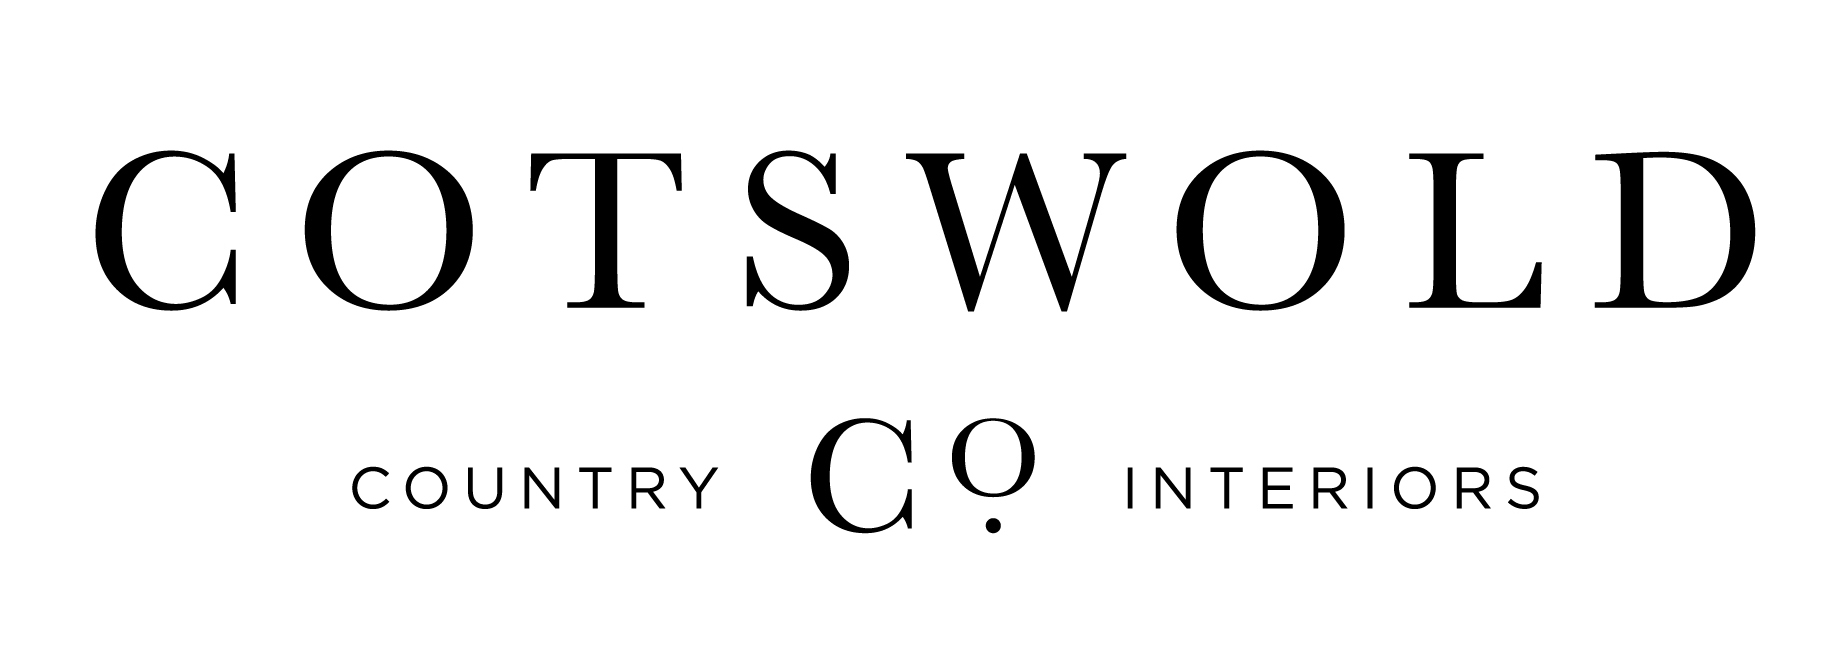 Cotswold Company Support Help Center home page